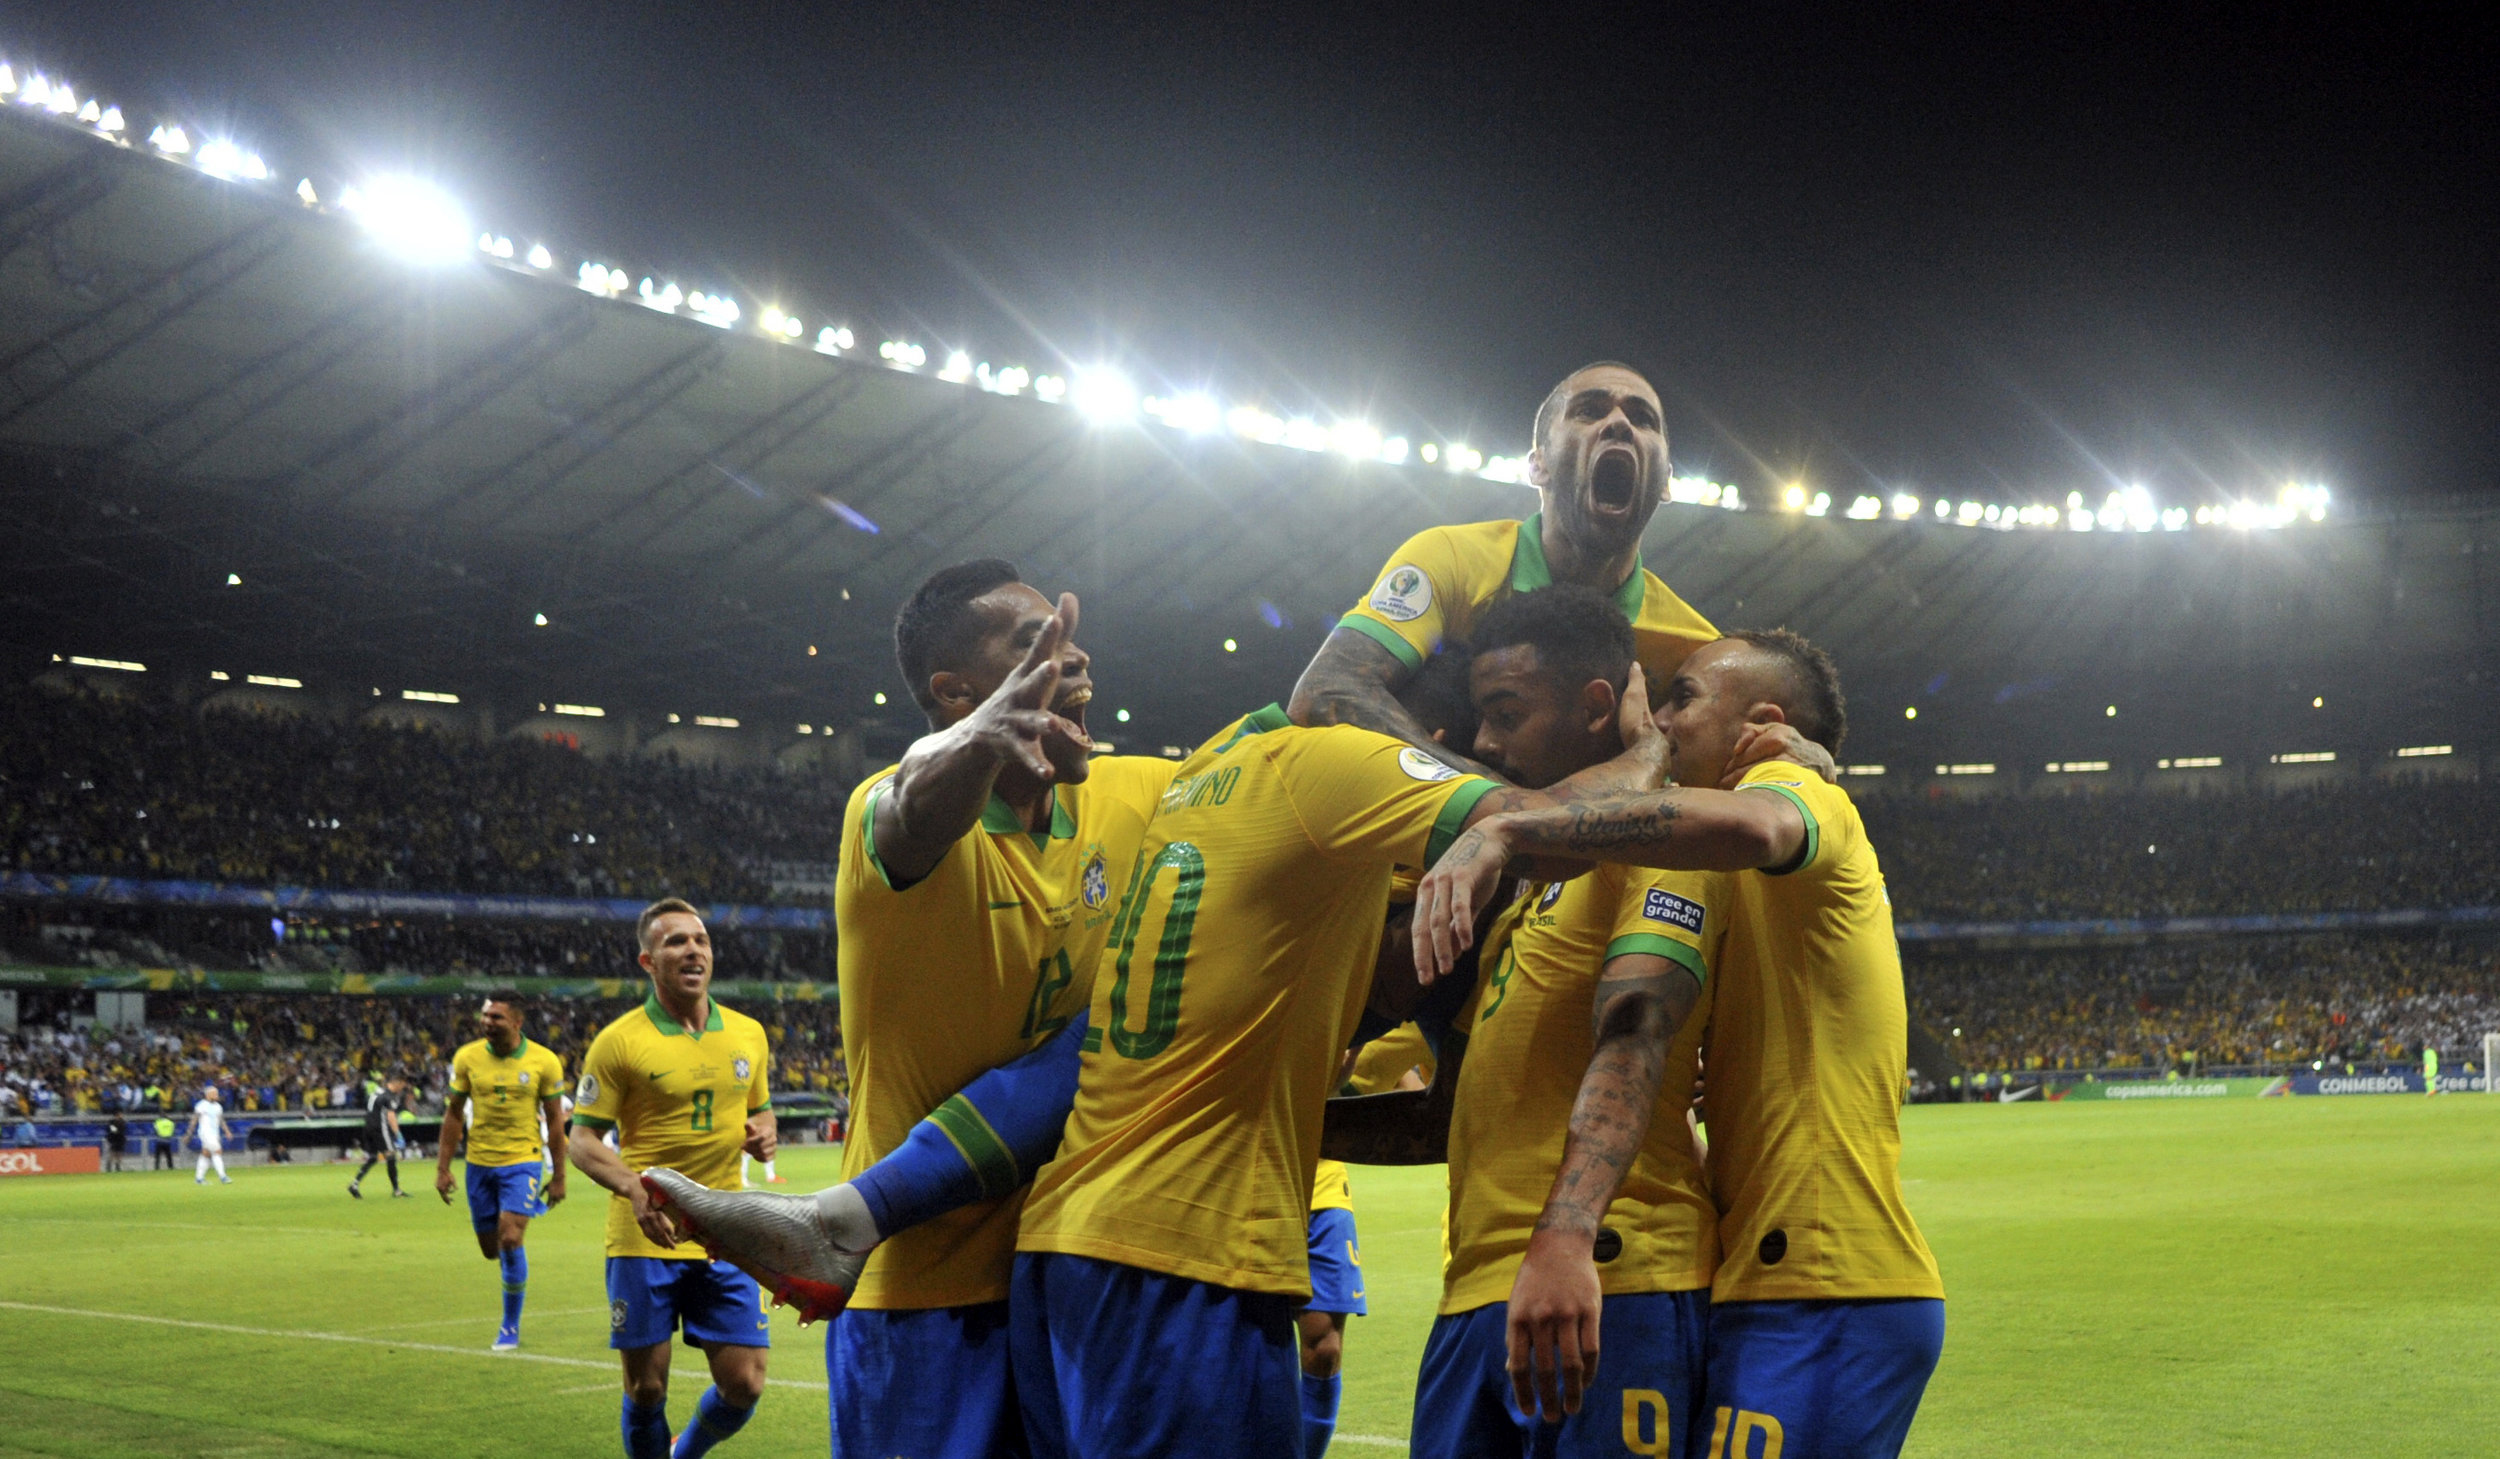 Brazil's Dani Alves, top, jumps on top of his teammates after teammate Gabriel Jesus scored their team's first goal against Argentina during a Copa America semifinal soccer match at Mineirao stadium in Belo Horizonte, Brazil, Tuesday, July 2, 2019. (AP Photo/Eugenio Savio)